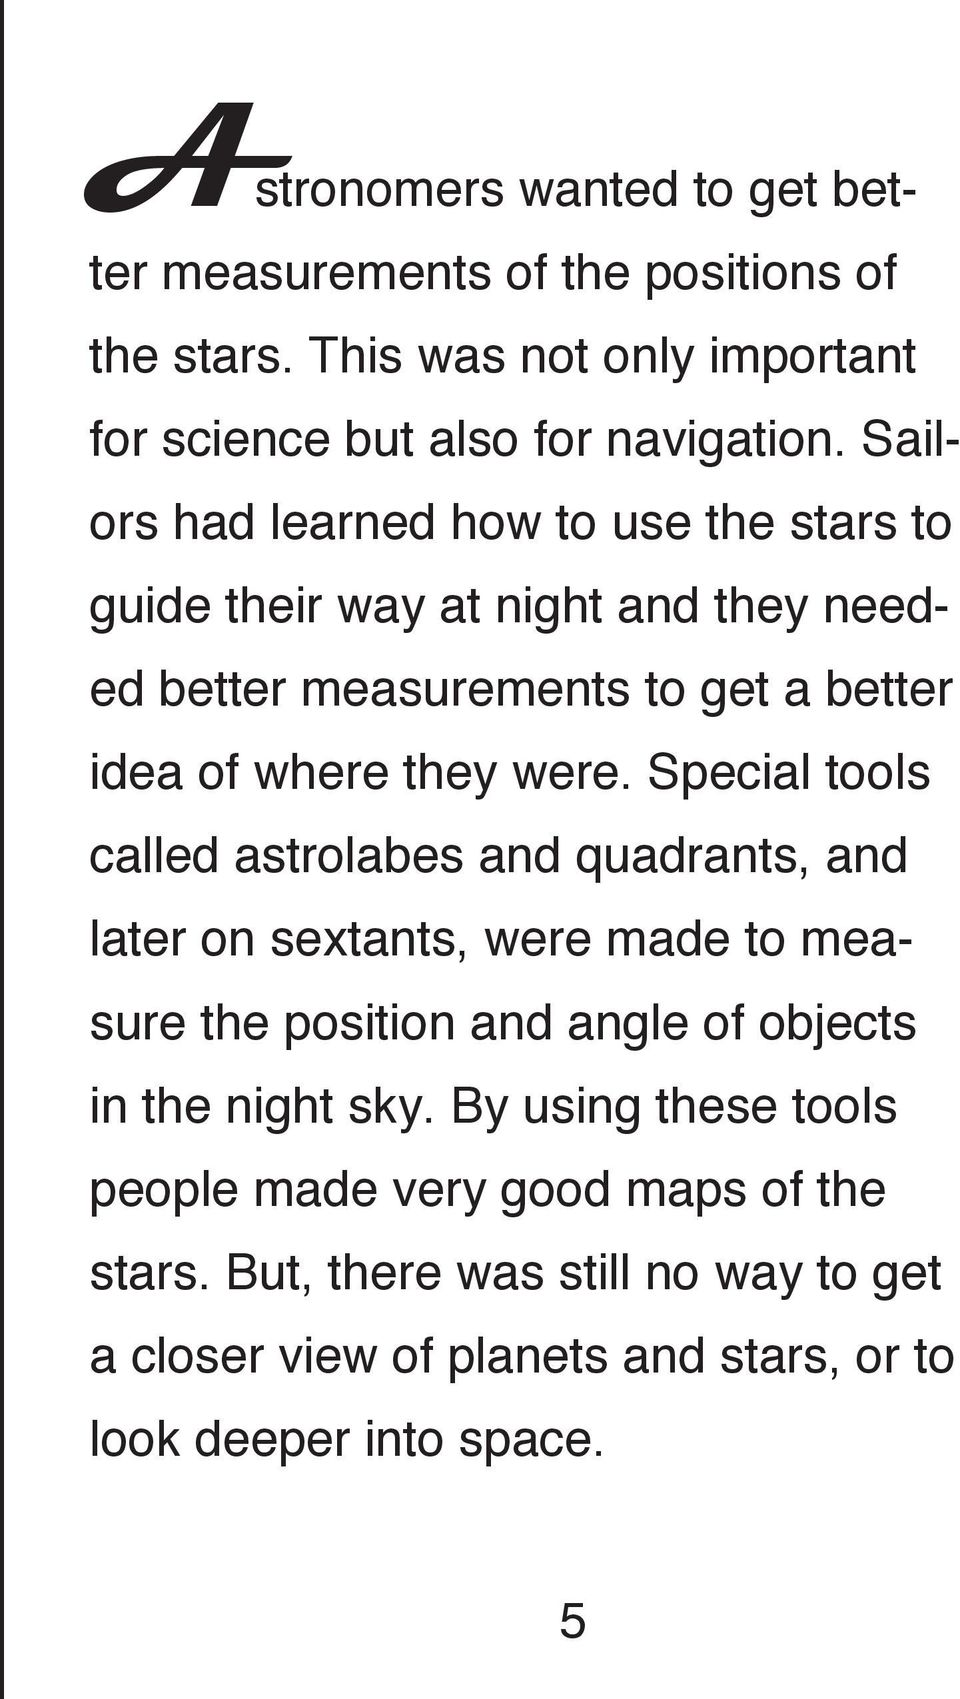 Special tools called astrolabes and quadrants, and later on sextants, were made to measure the position and angle of objects in the night sky.